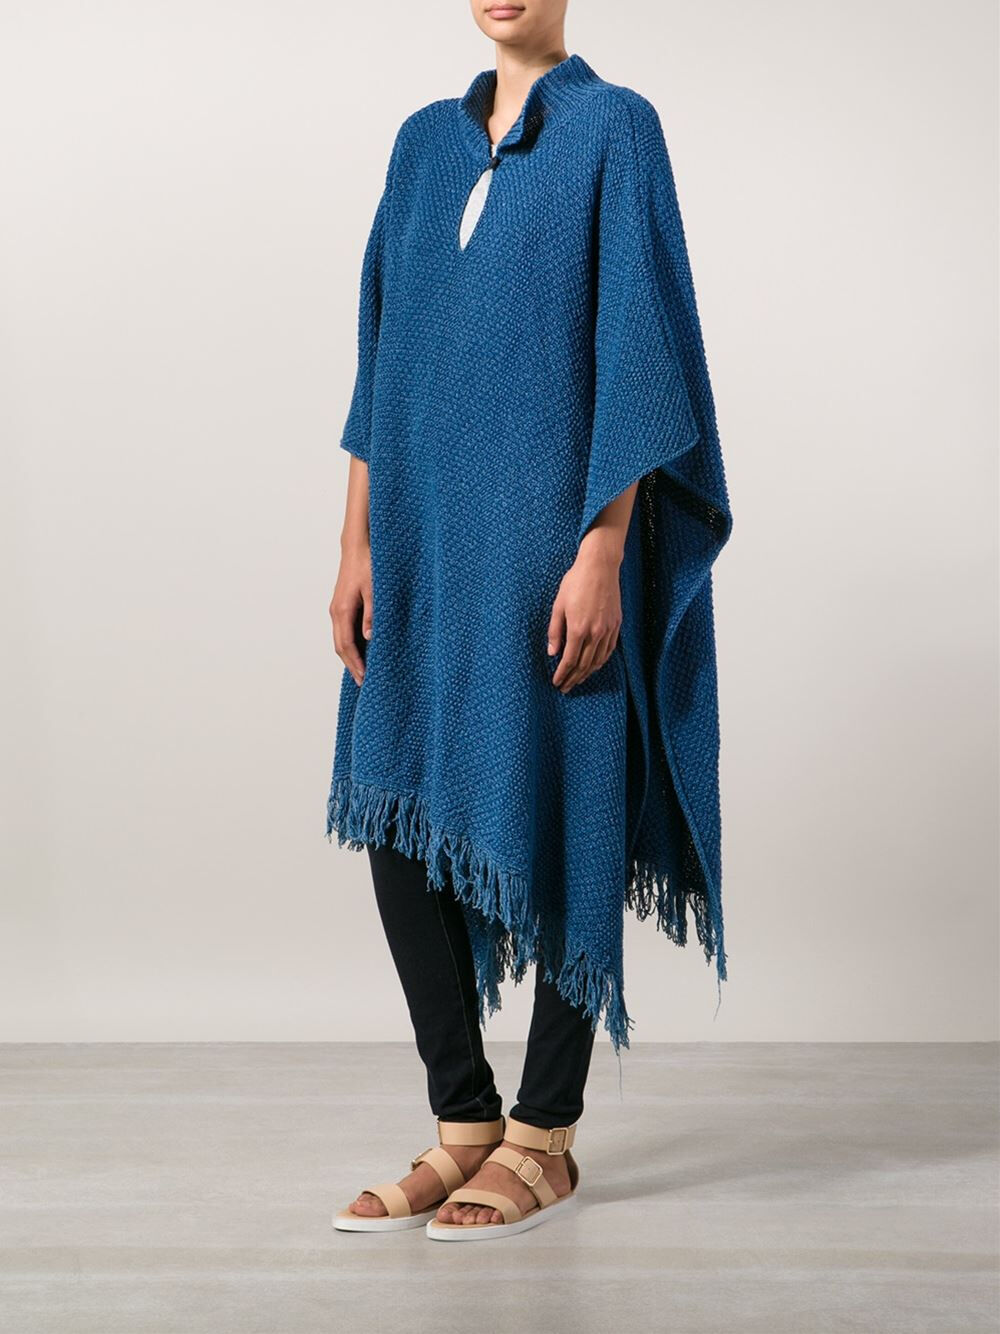 NEW RYAN ROCHE    736 Denim bluee Cotton Knit Aspen Shakti Shala Poncho Coat 027676